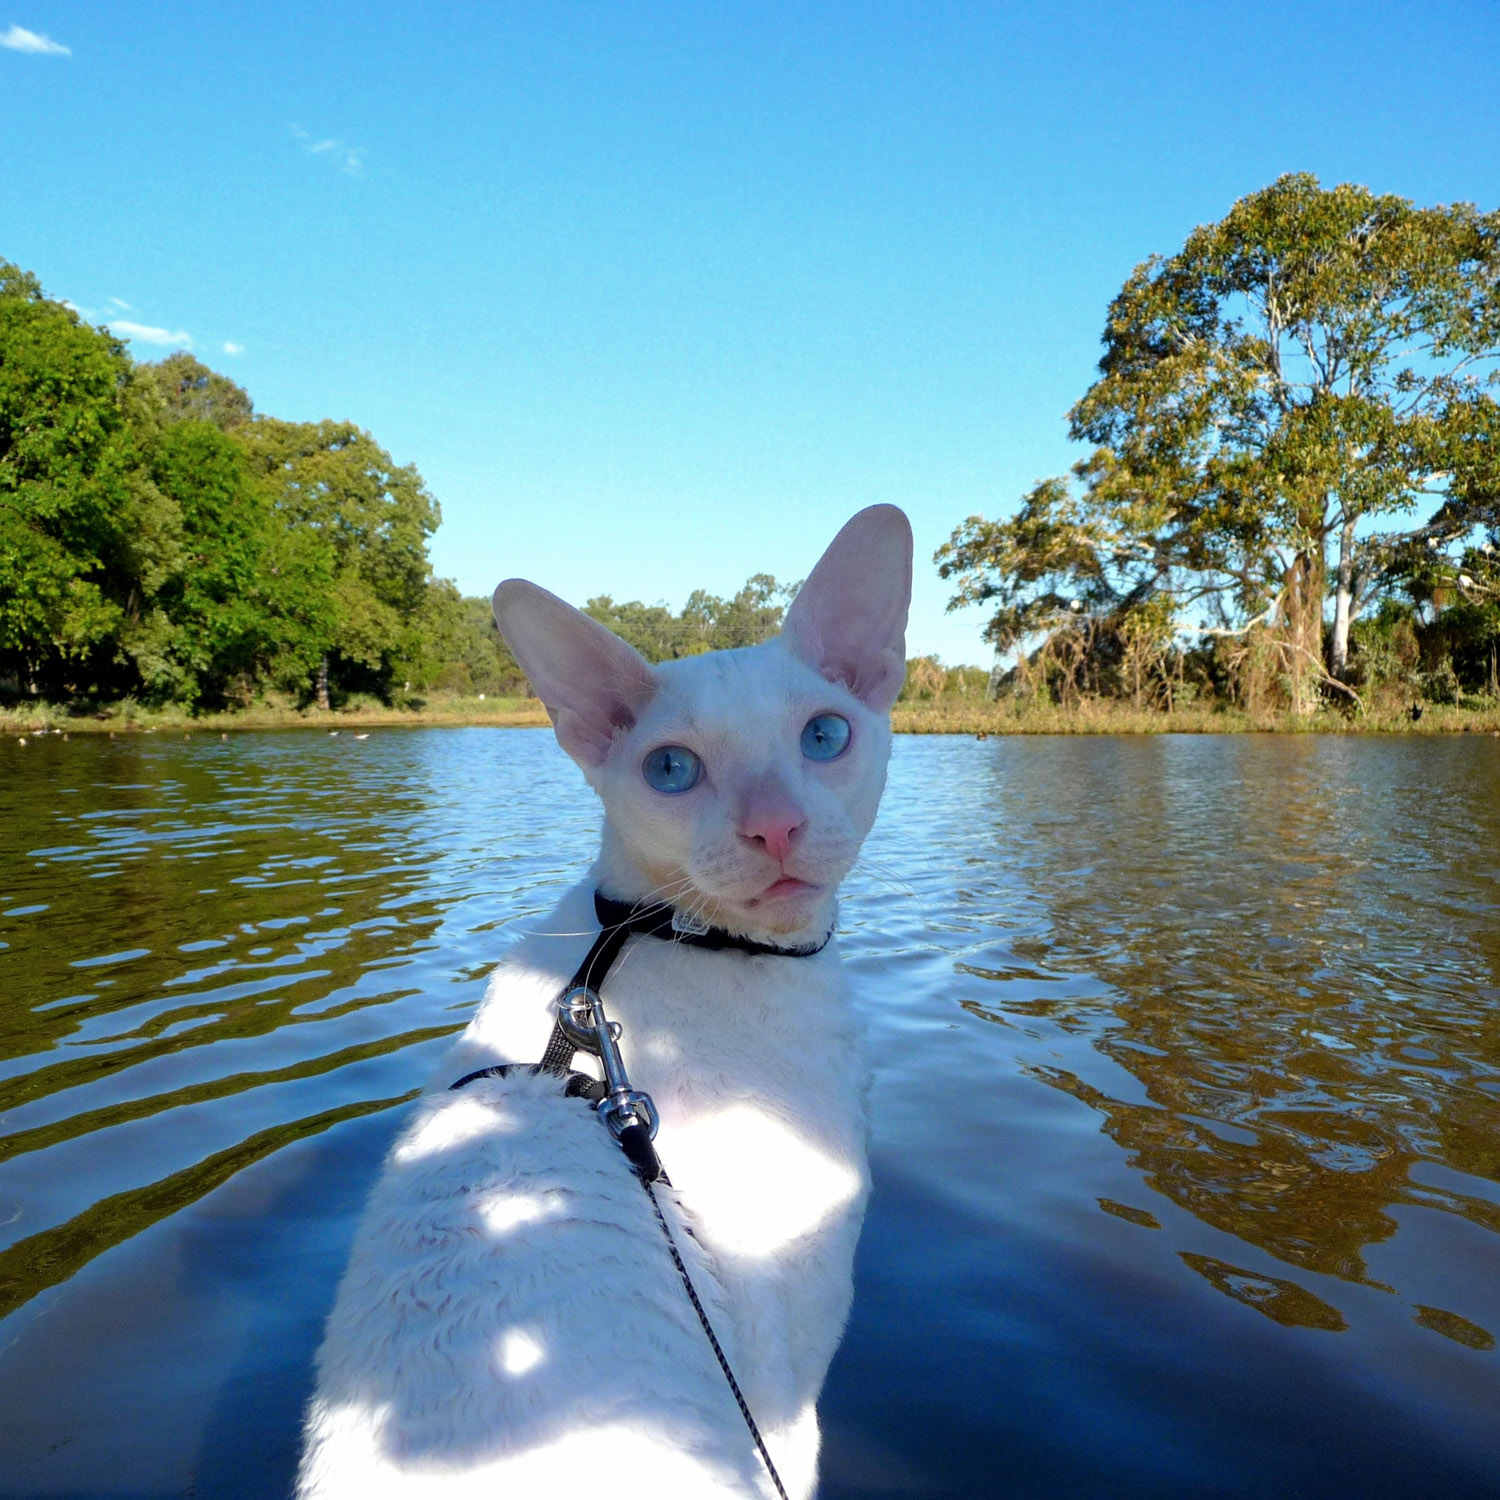 Gandalf is a brave kitty who's up for anything despite being deaf!